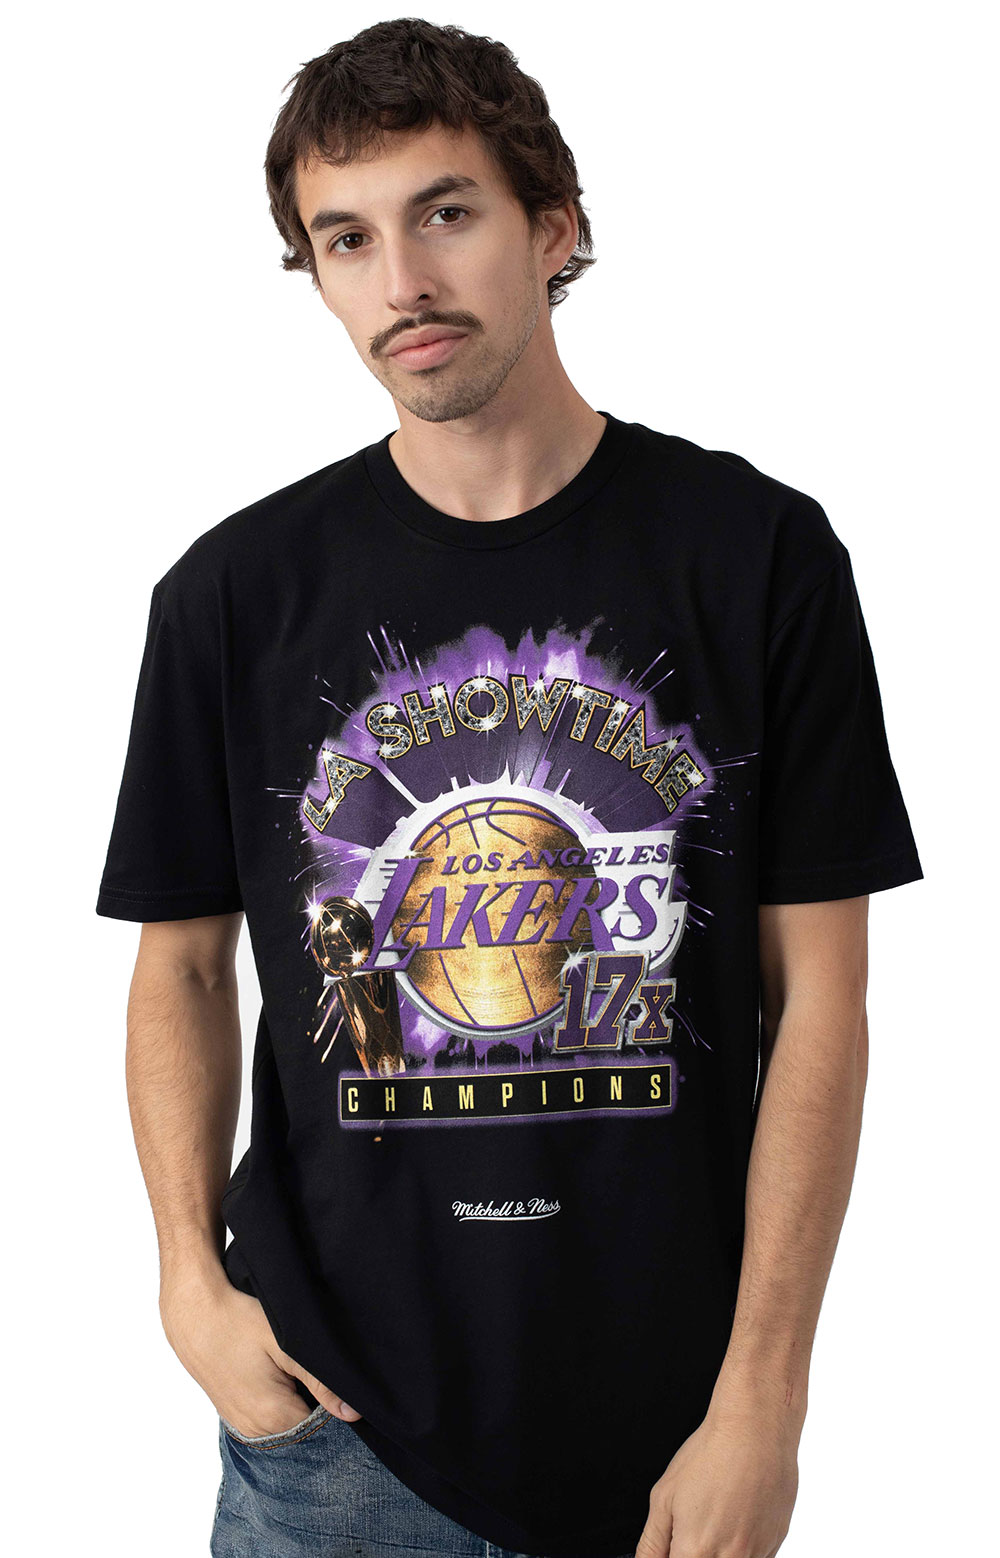 NBA Showtime 17x T-Shirt - Lakers